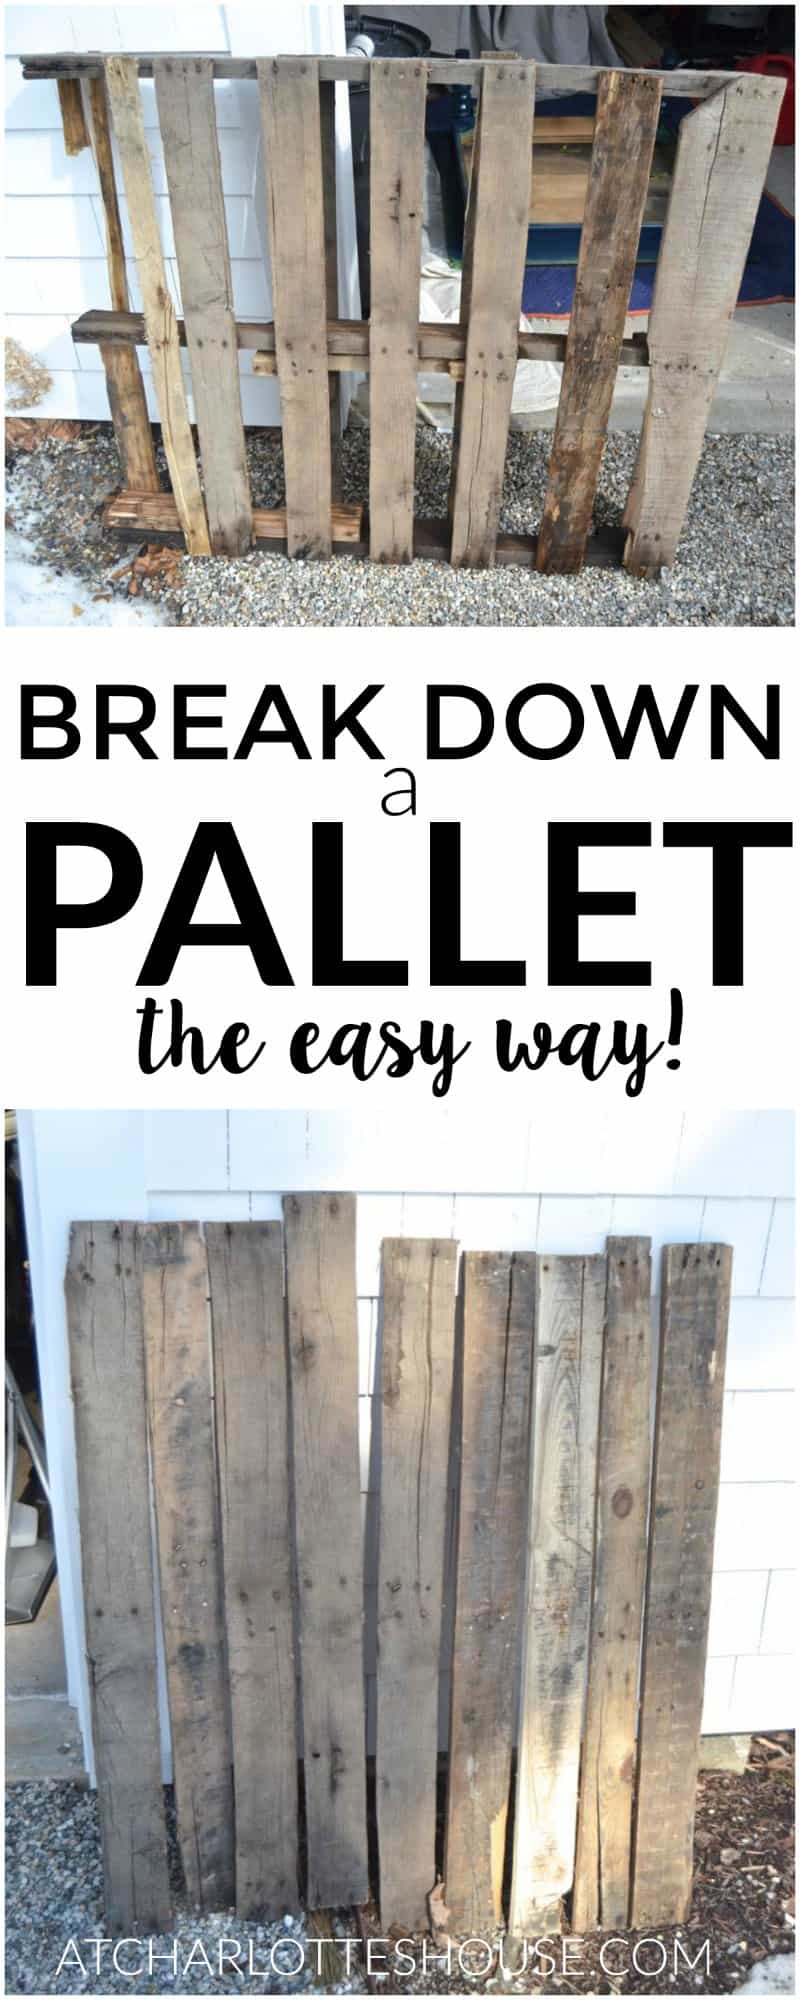 Pallet wood is so great to work with but a pain to take apart... this actual looks super easy!